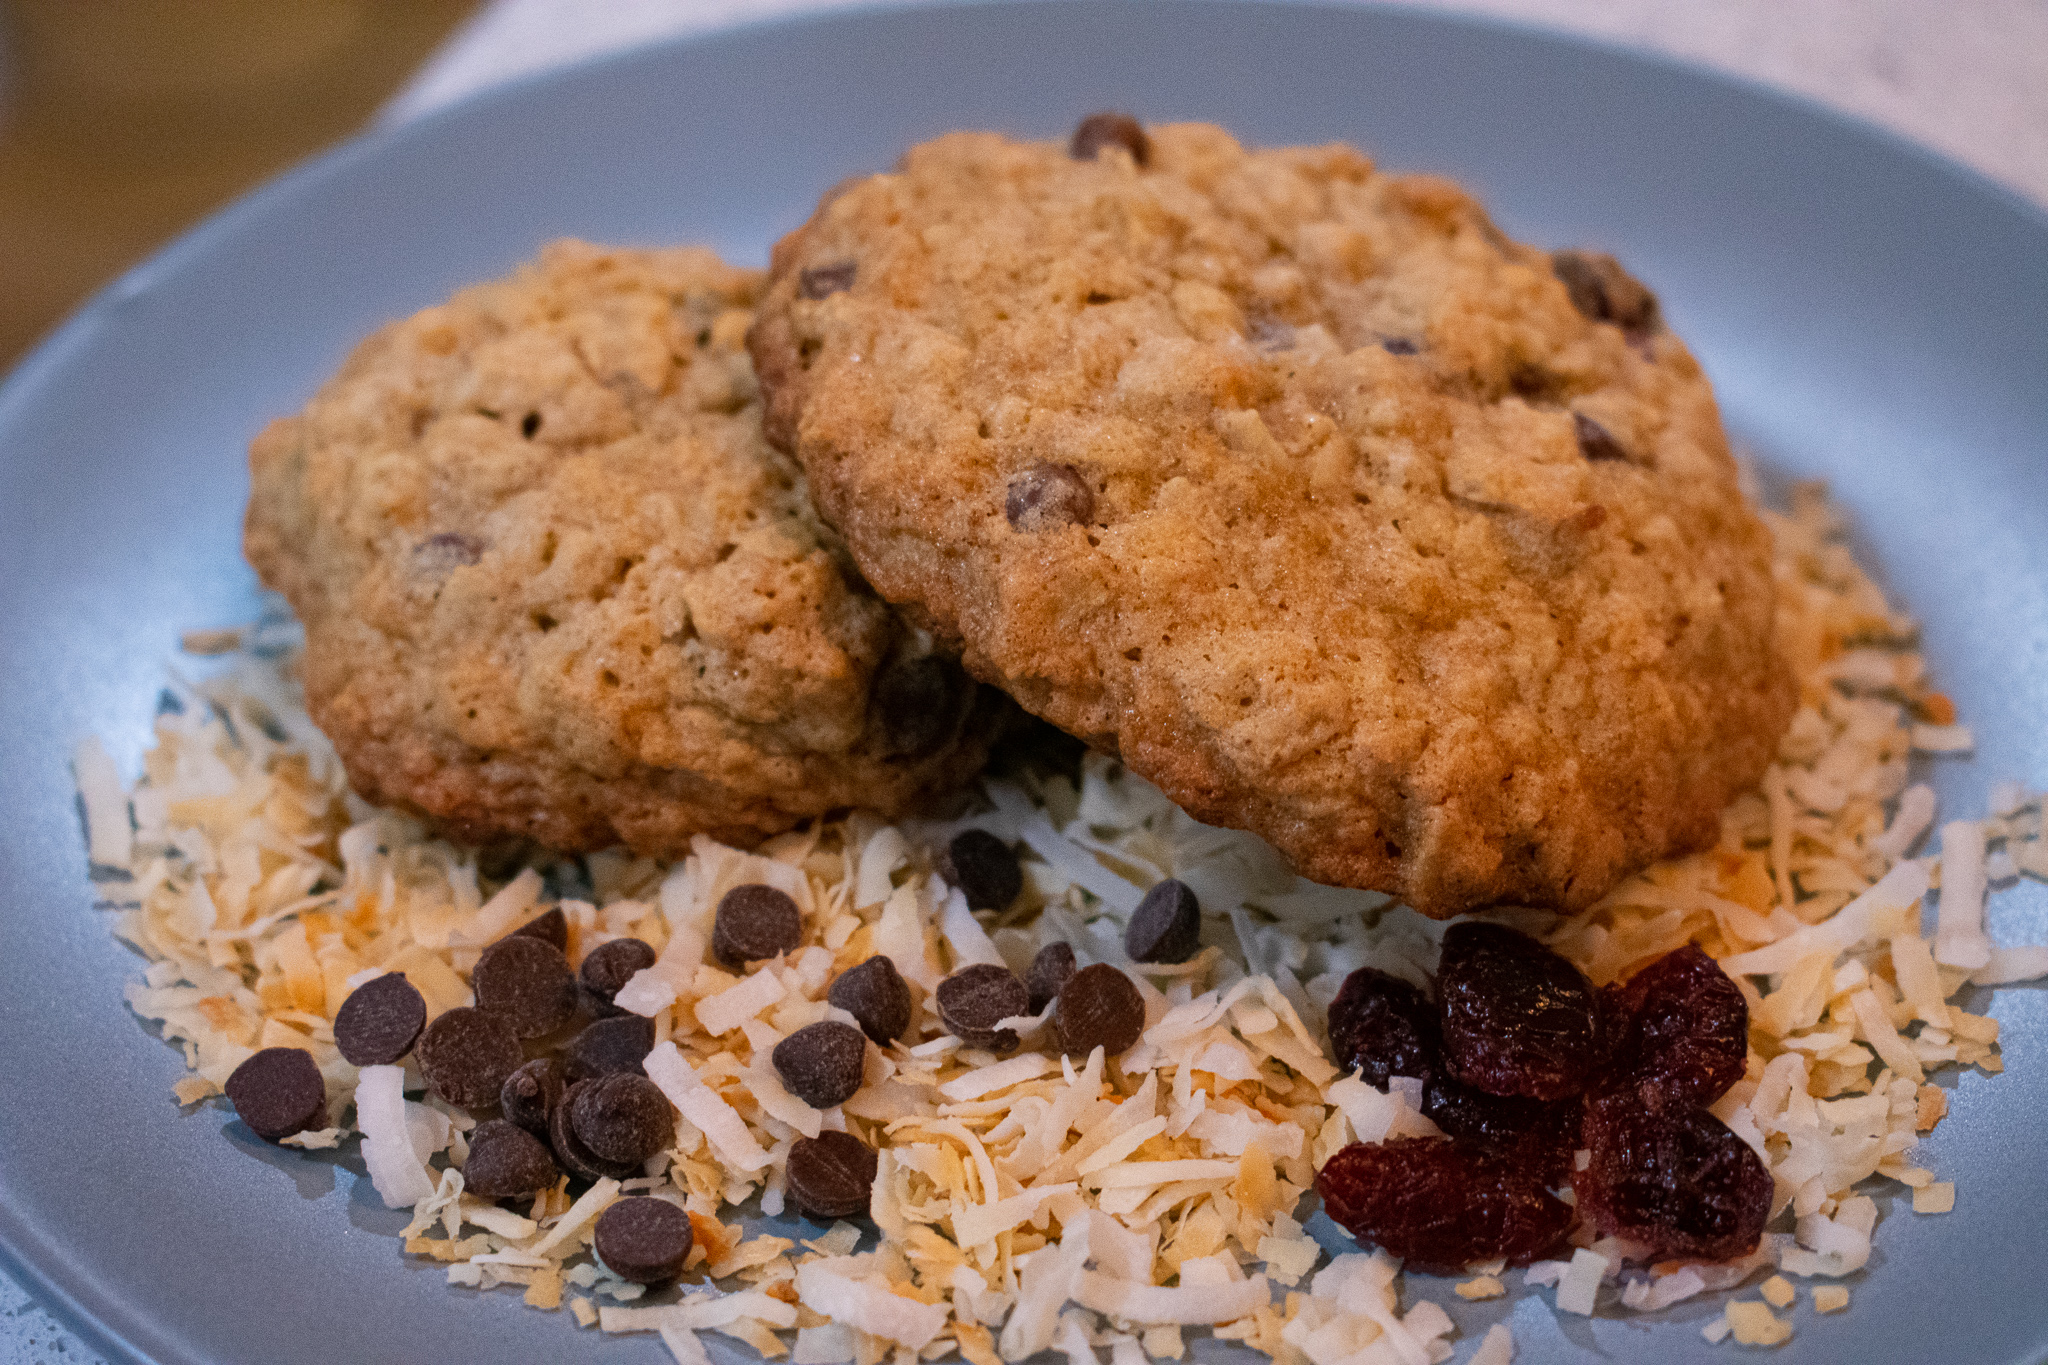 oatmeal cookies with toasted coconut, craisins, and chocolate chips